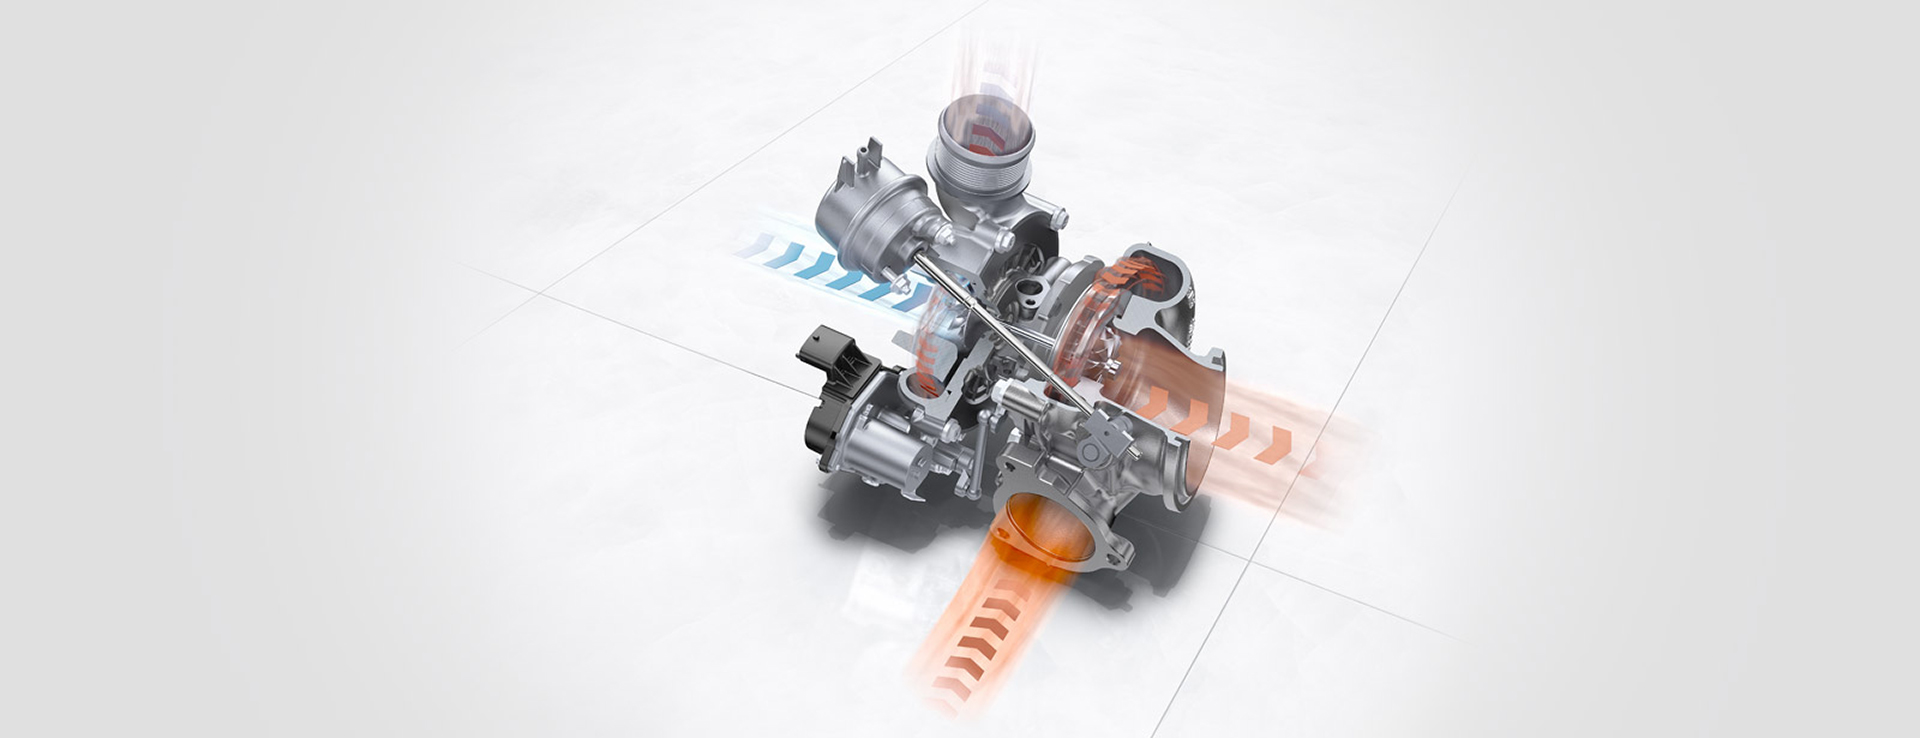 Porsche Variable Turbine Geometry